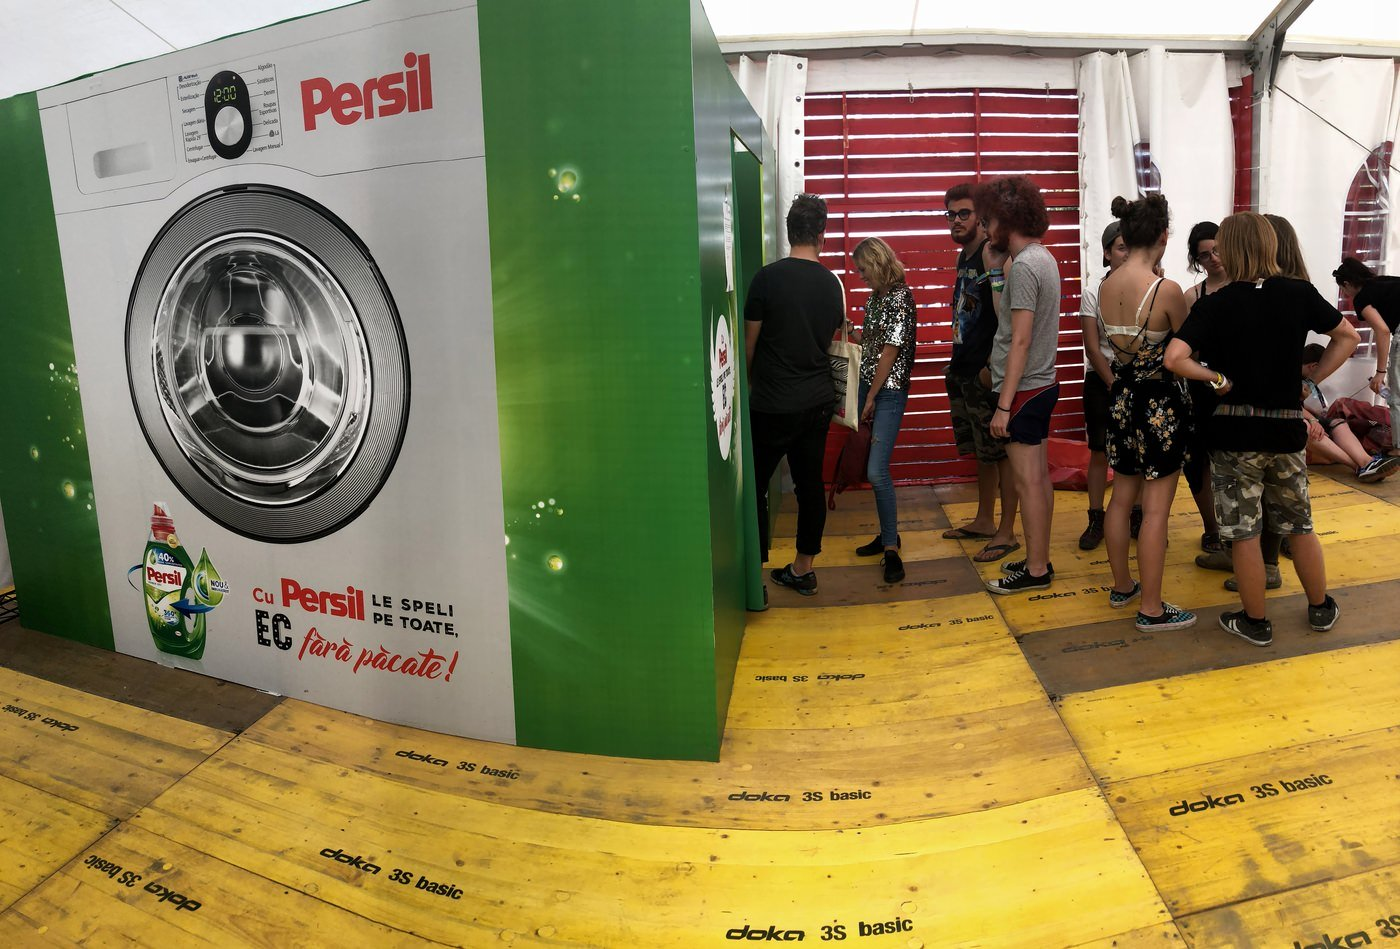 Activare-Photobooth-Cheerup-Persil-Electric-Castle-17